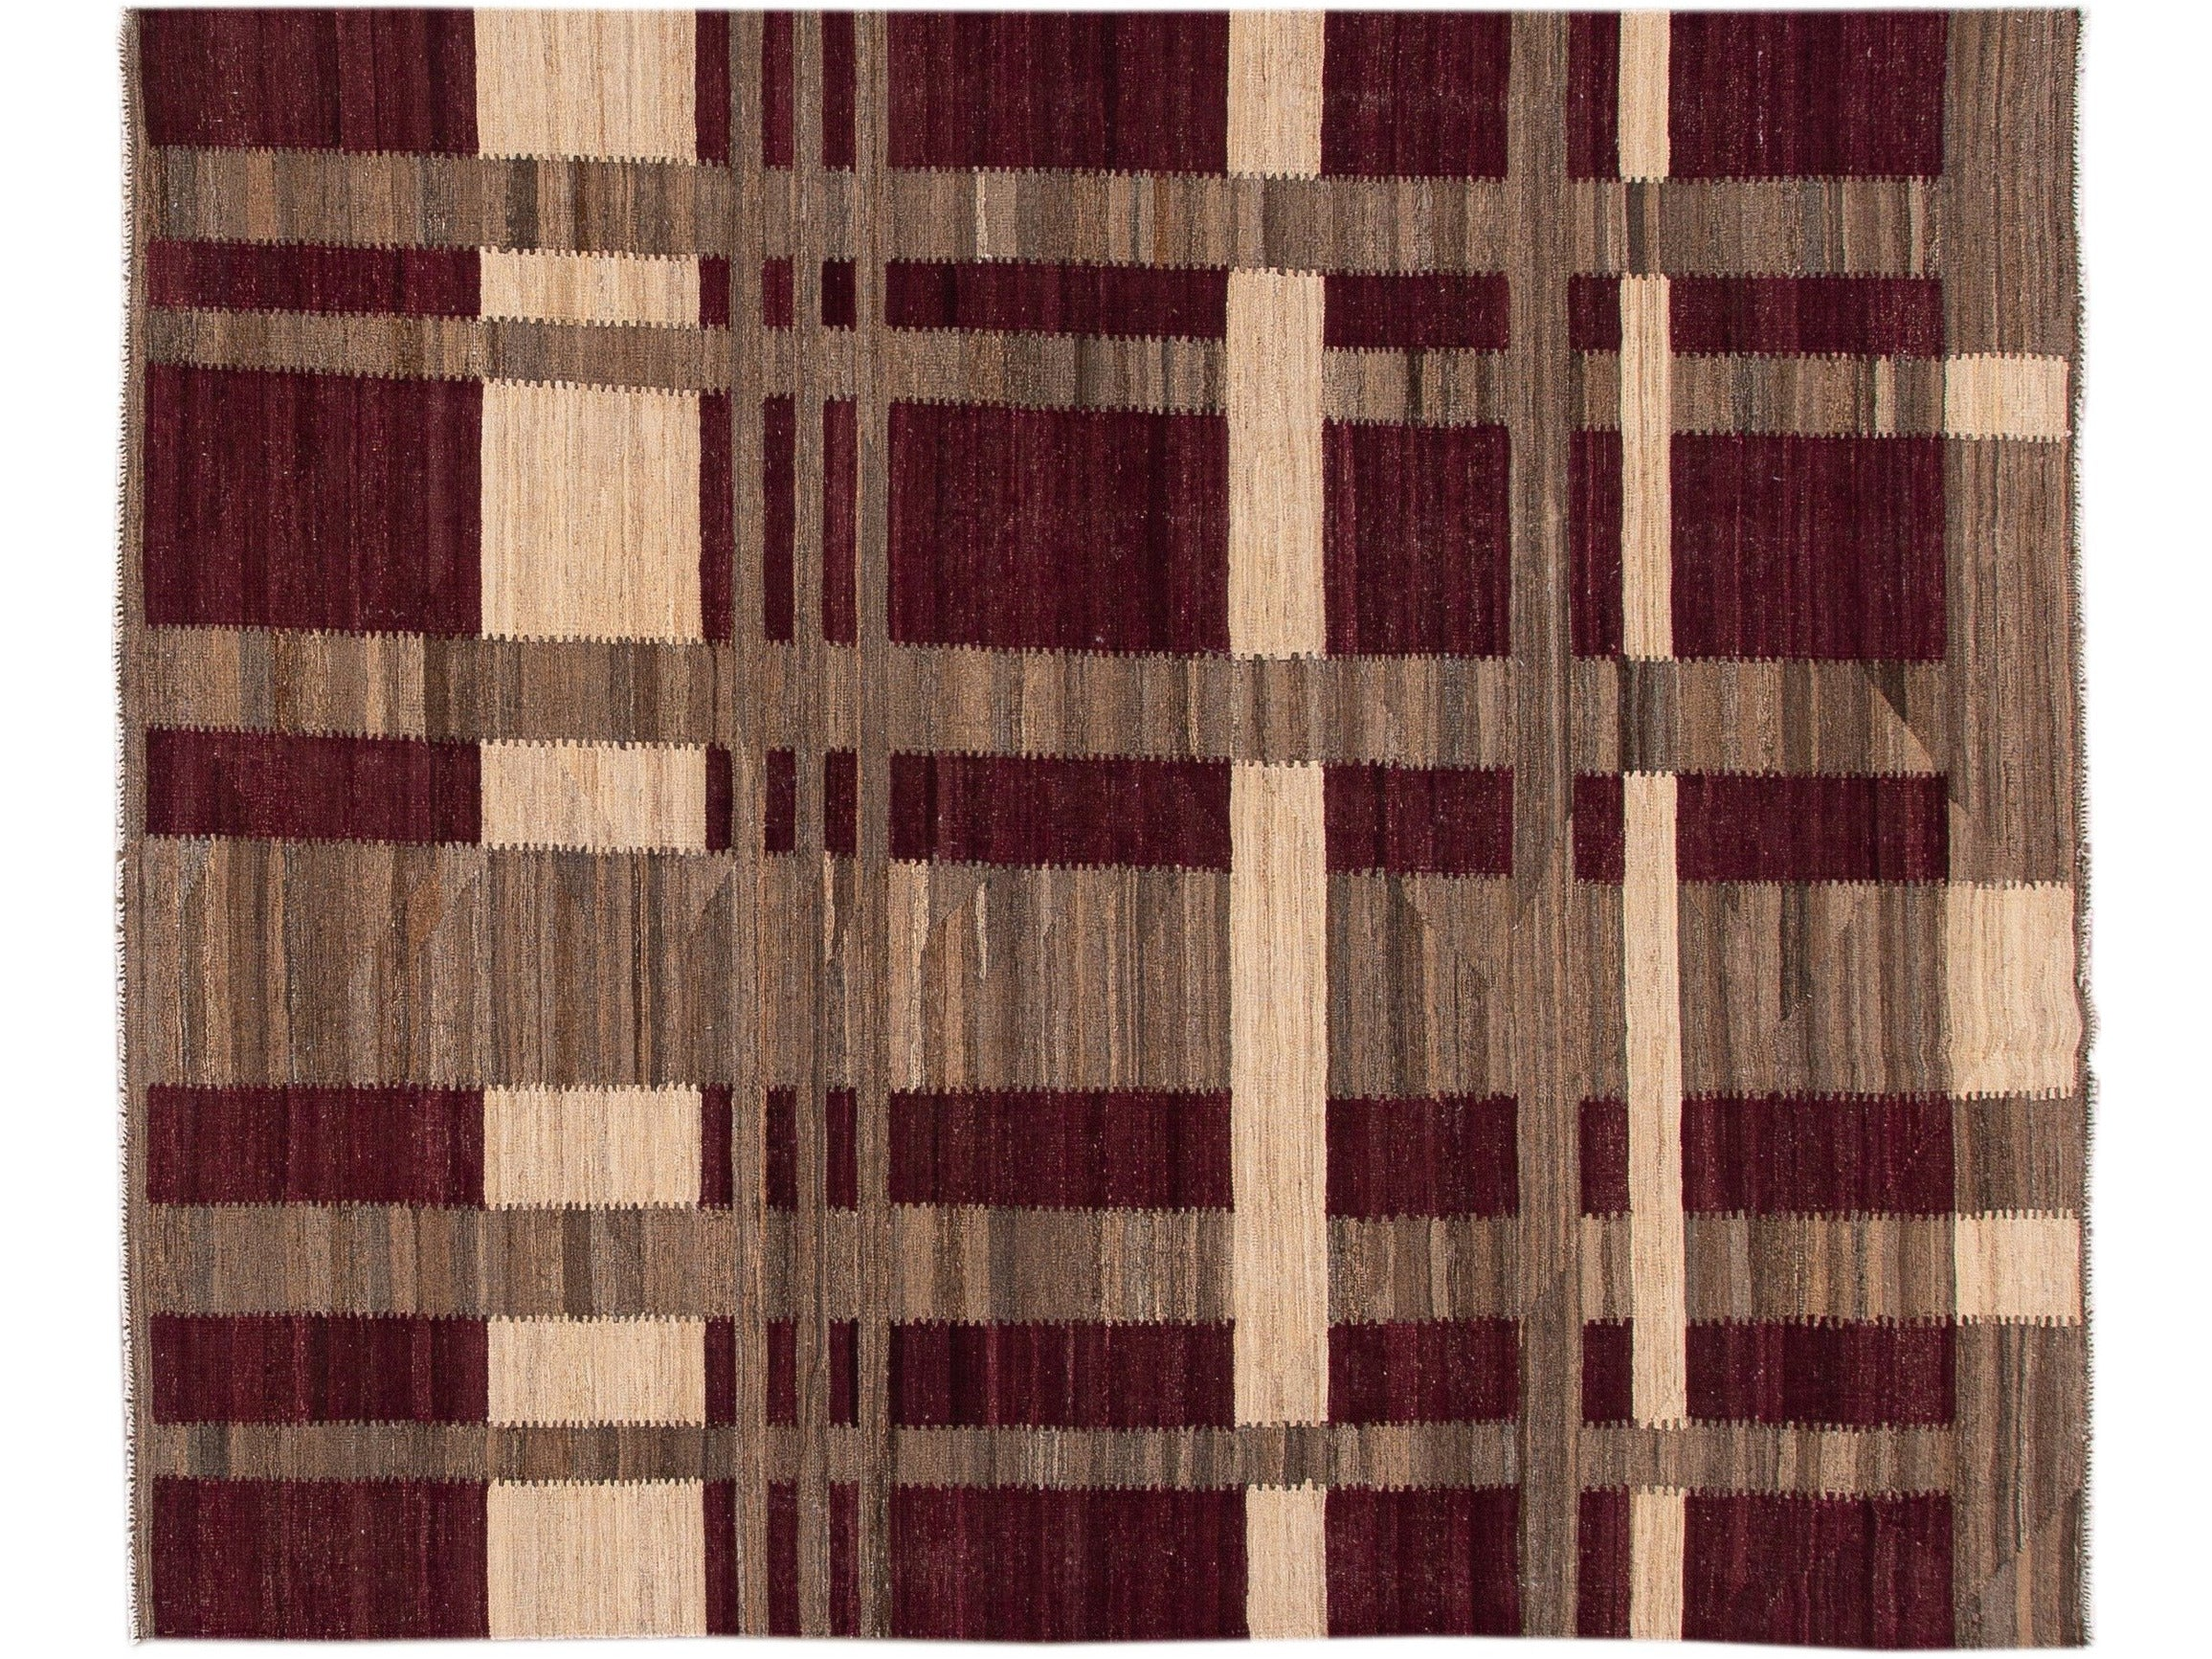 Modern Kilim Flatweave Burgundy and Brown Geometric Wool Rug